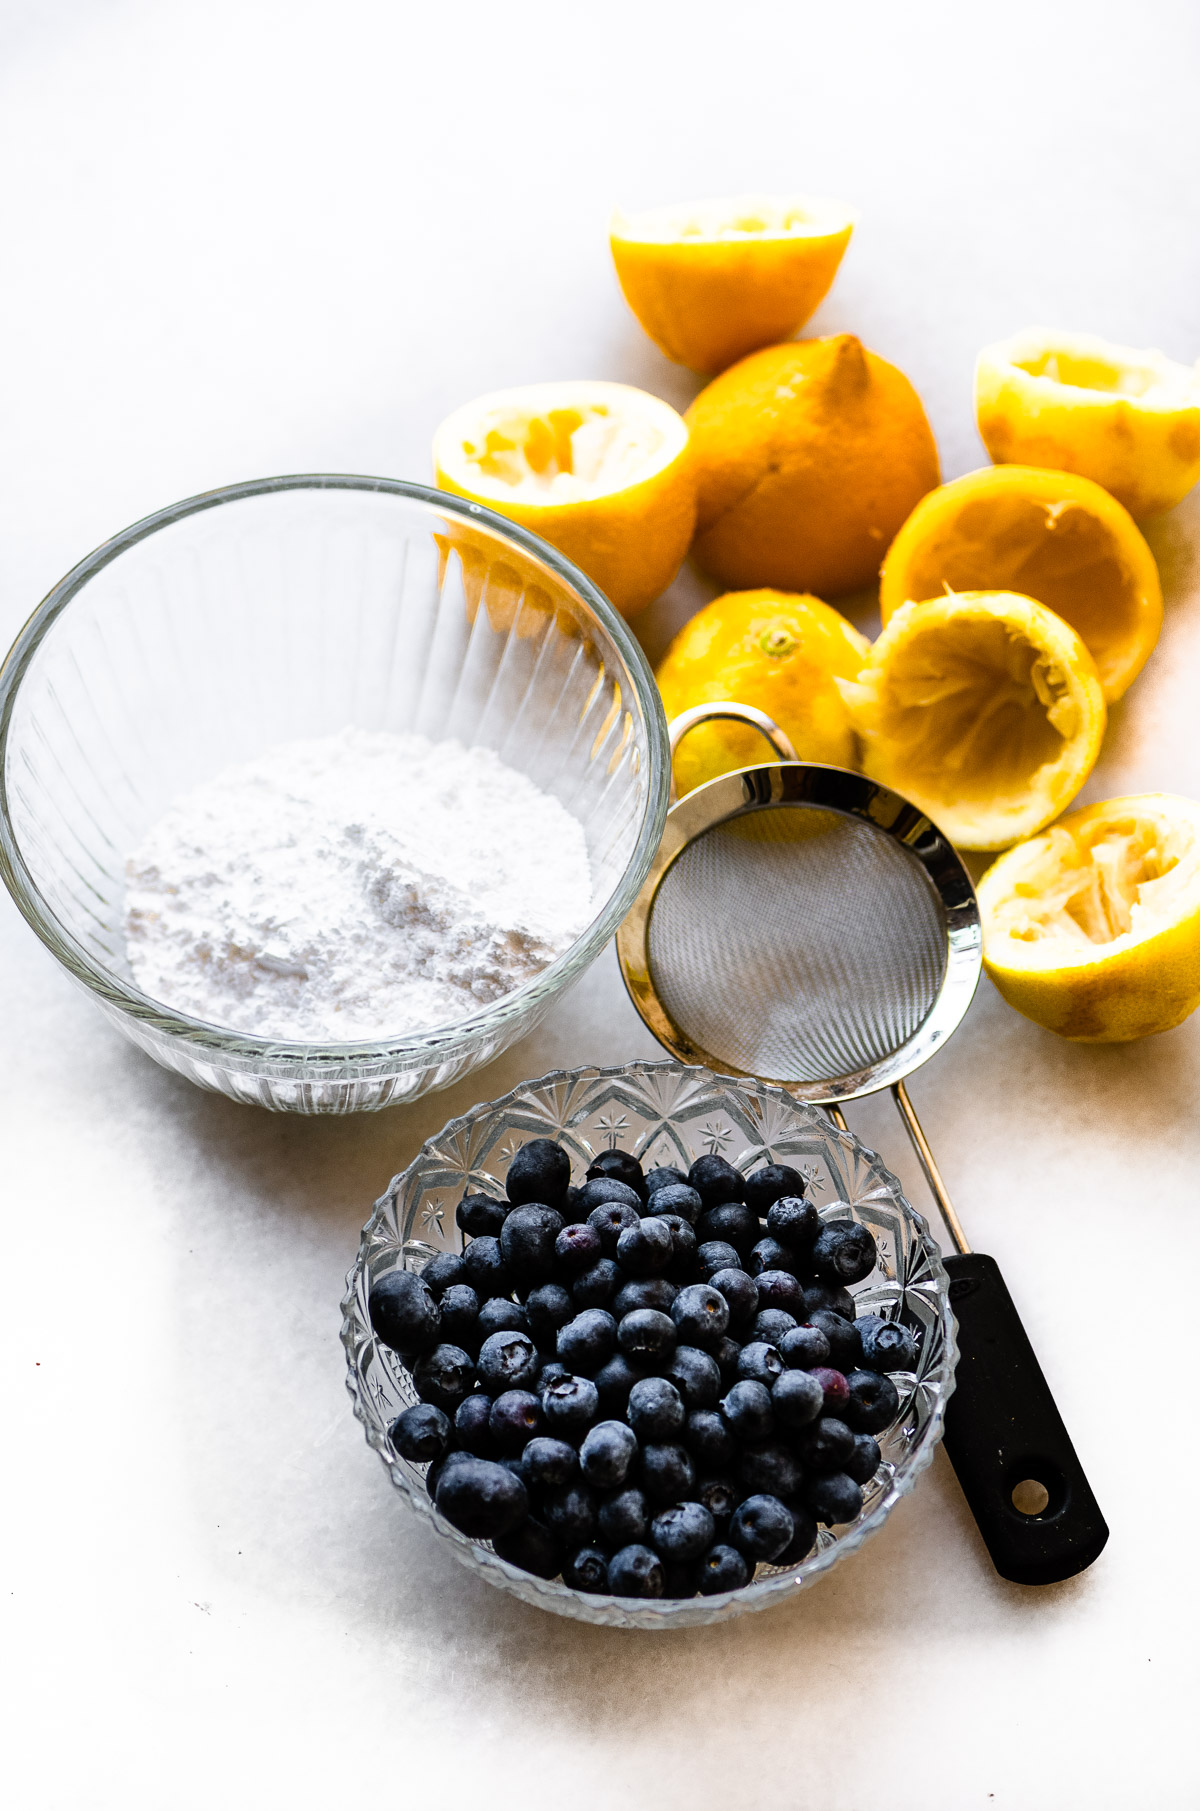 lemons, blueberries, and powdered sugar for a flourless warm lemon pudding cake recipe